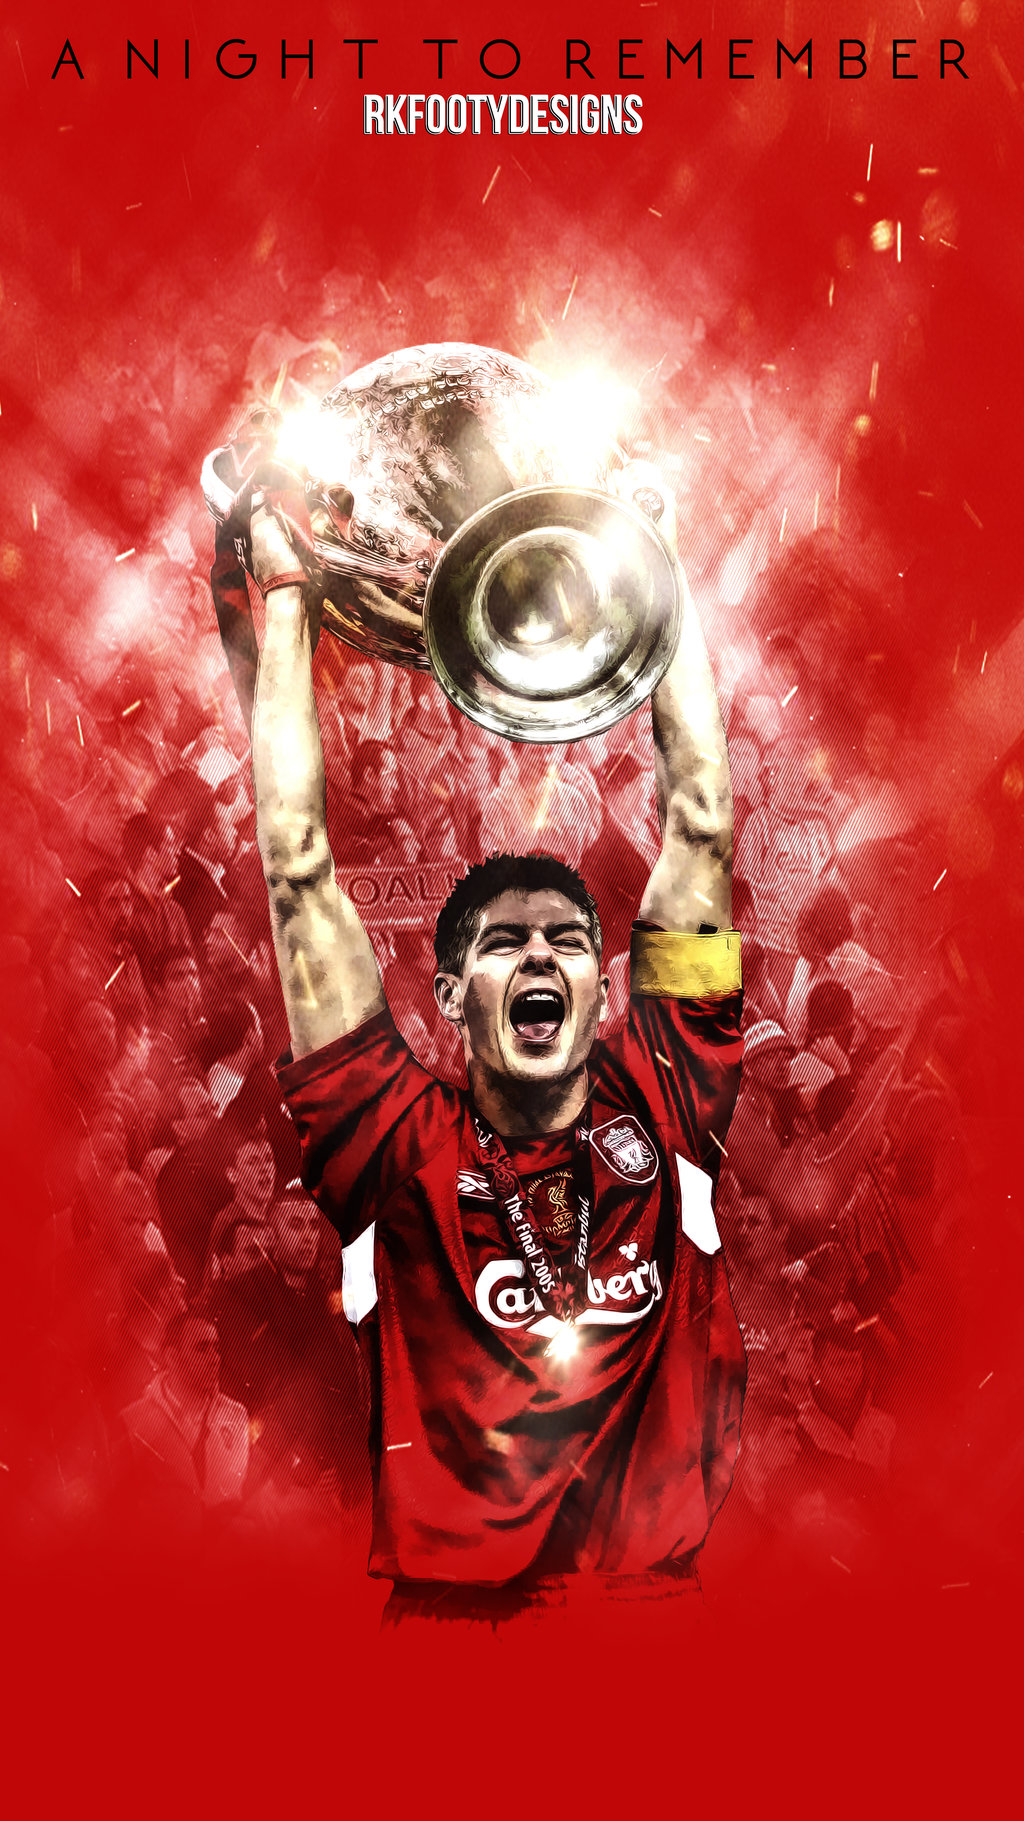 98 Steven Gerrard 2017 Wallpapers On Wallpapersafari